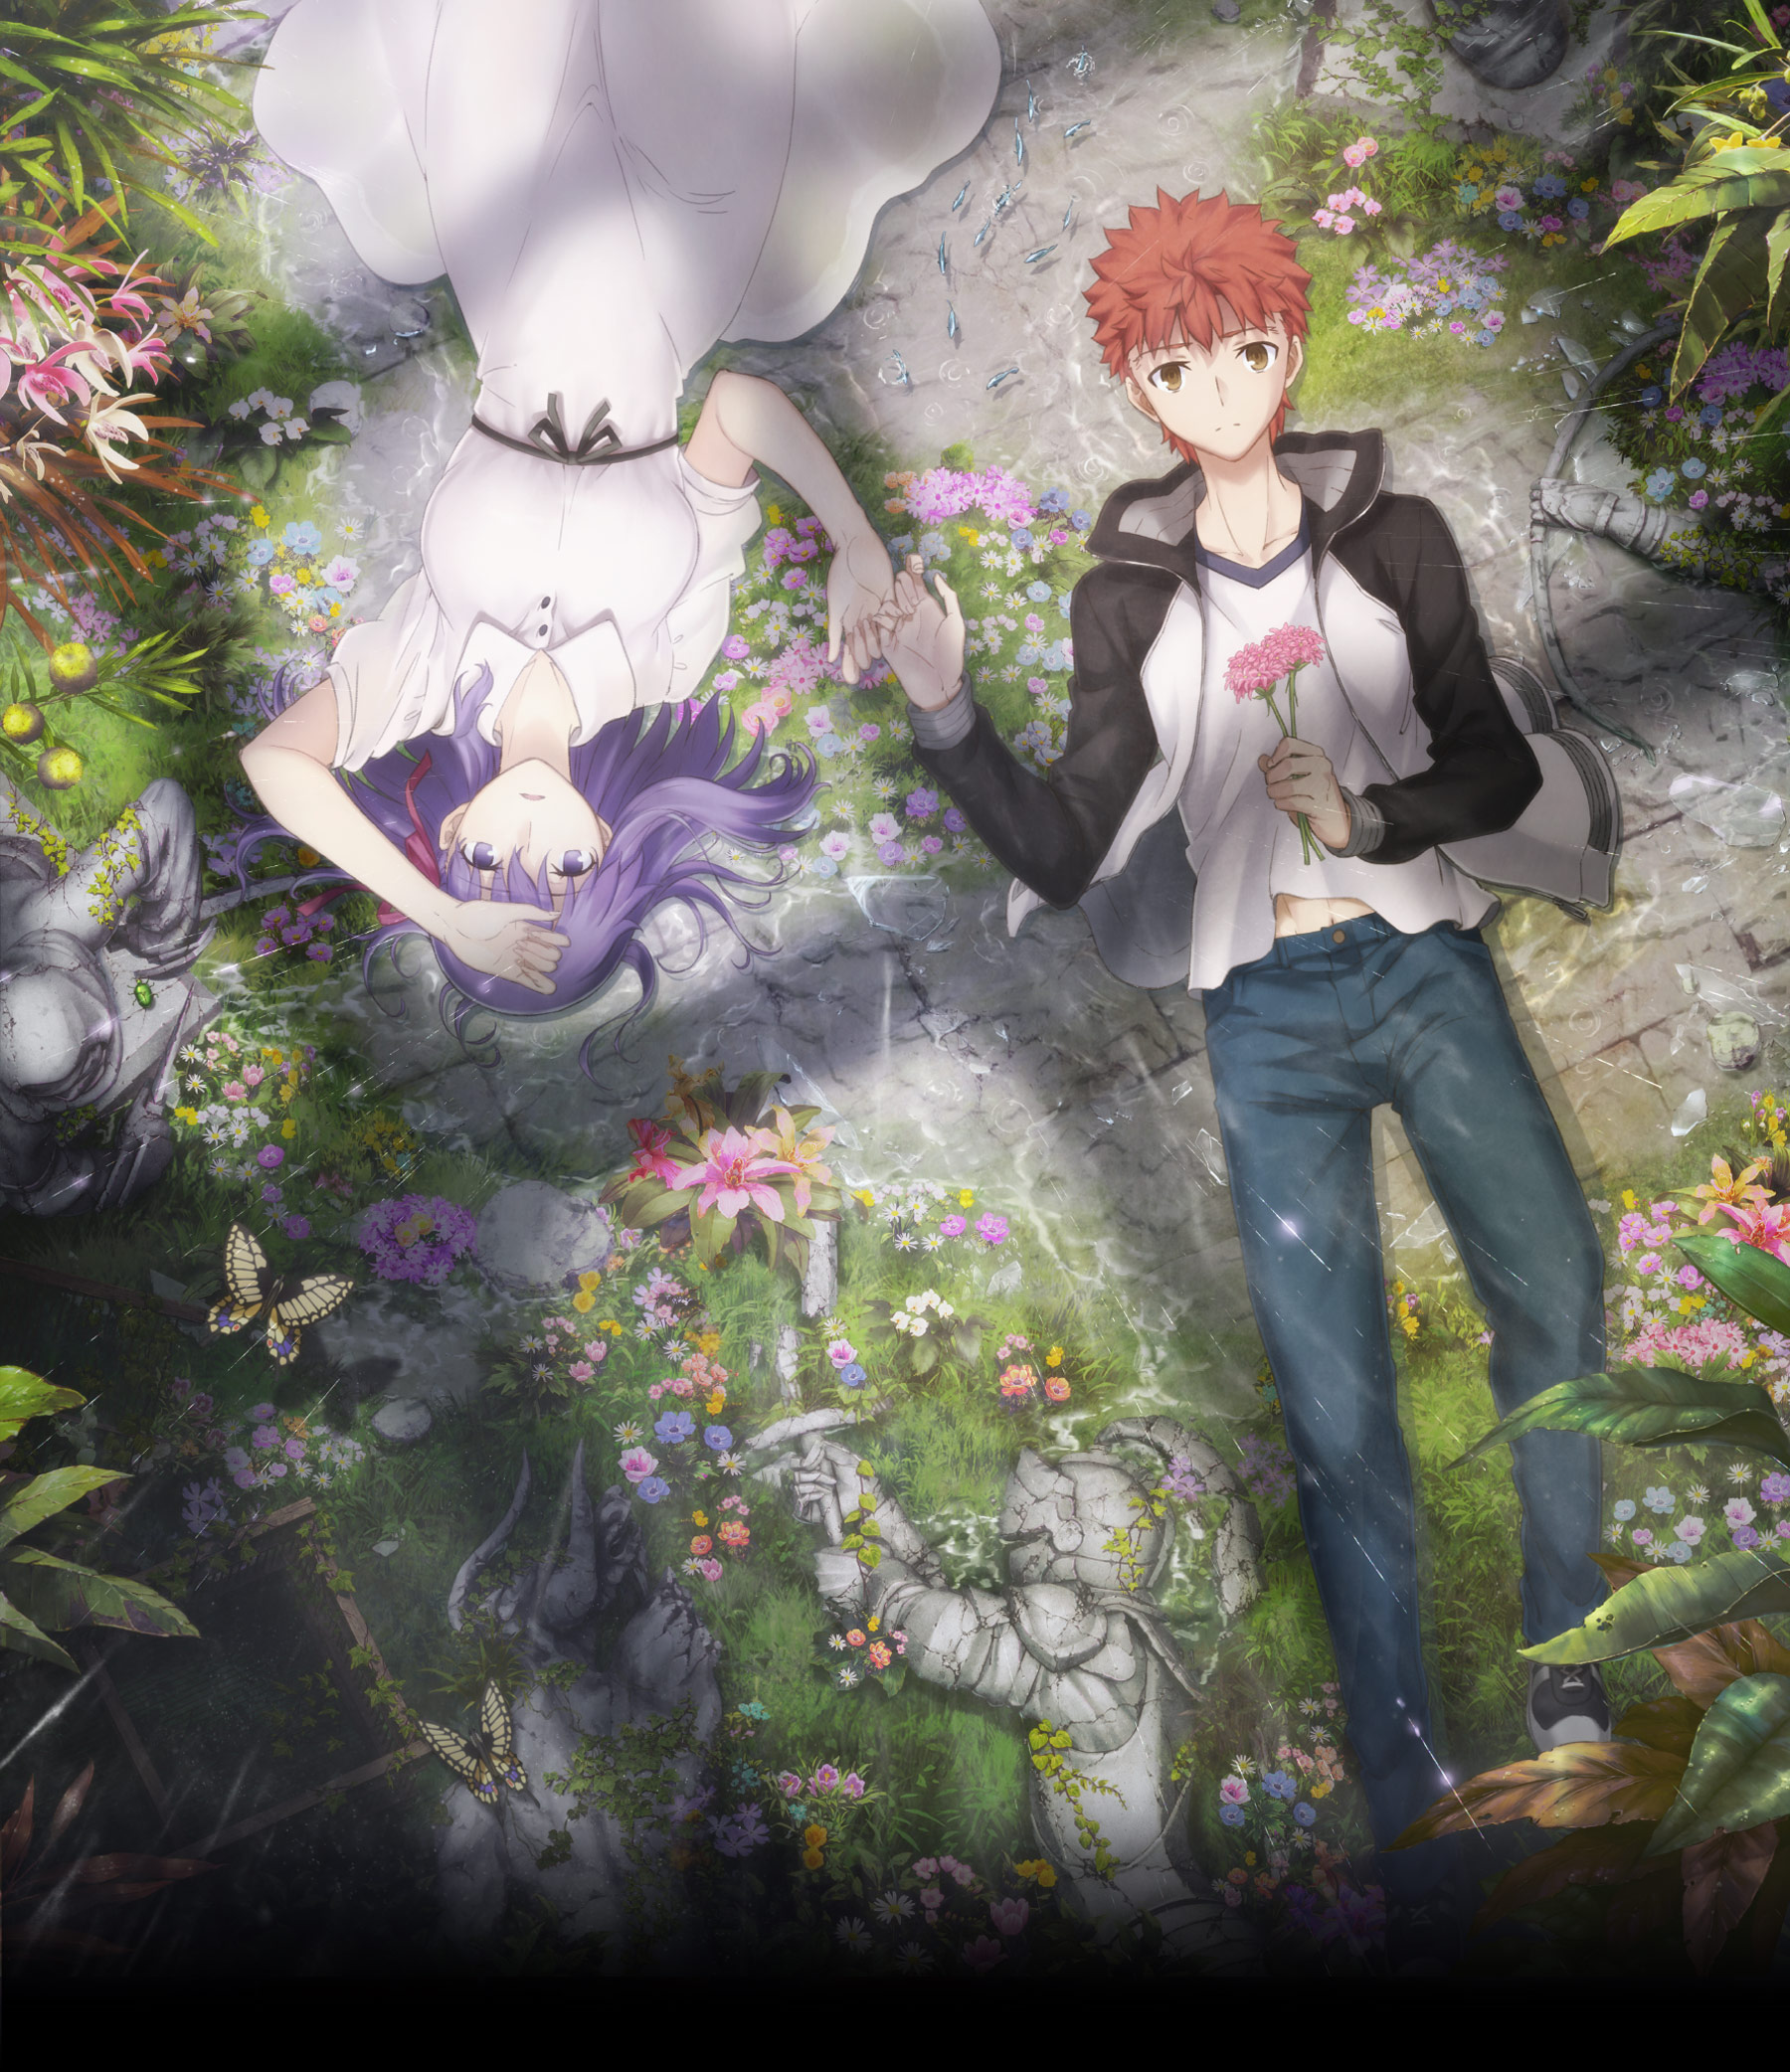 Featured image for Fate/Stay Night's Shirou Emiya and Sakura Matou: Love bound by Duty and Protection